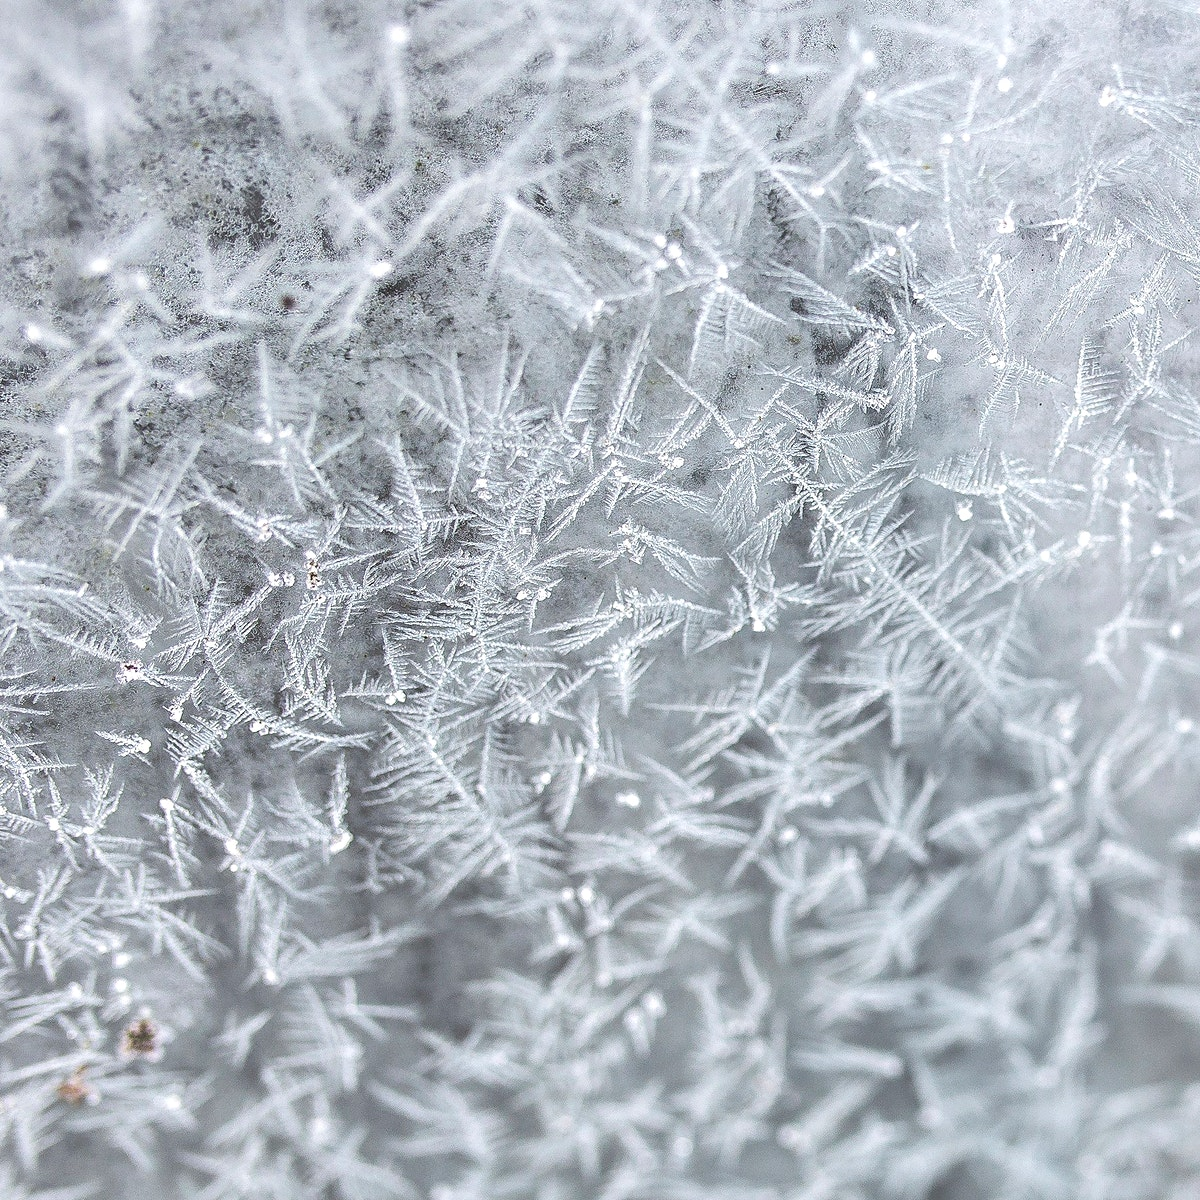 Frost on a window background